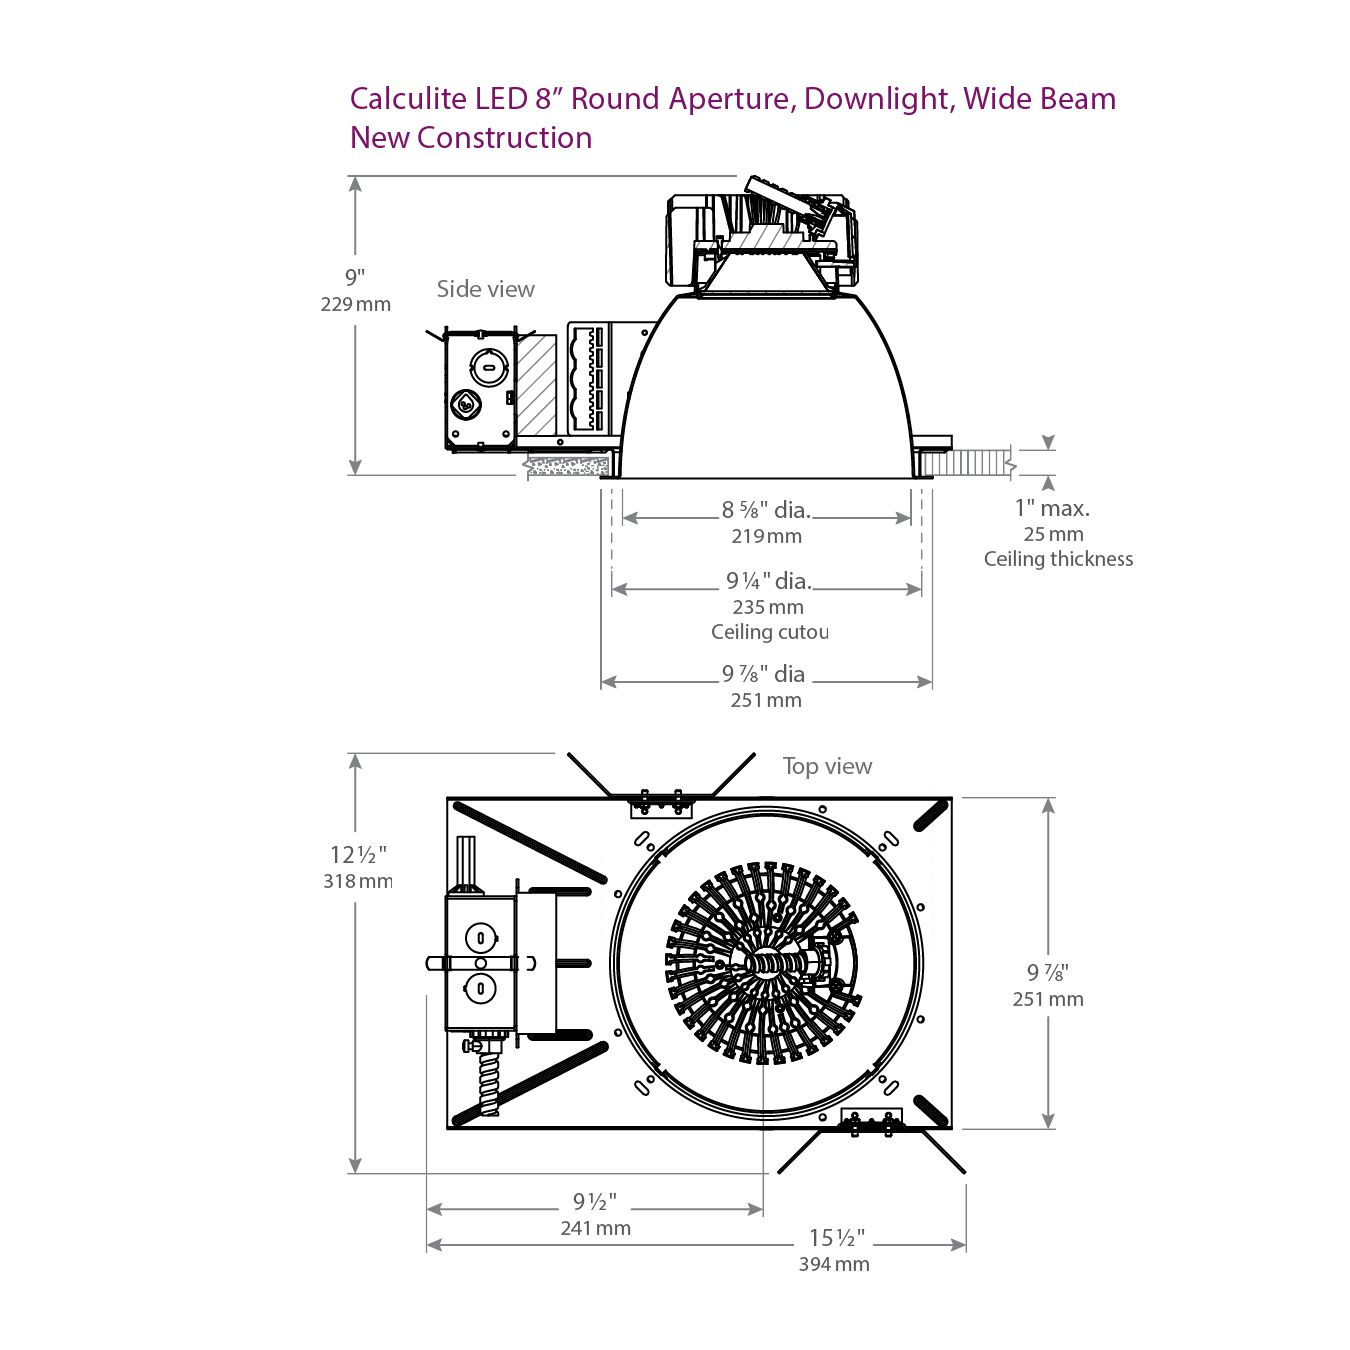 Lightolier C8l35n Calculite Led 8 Round Aperture Wide